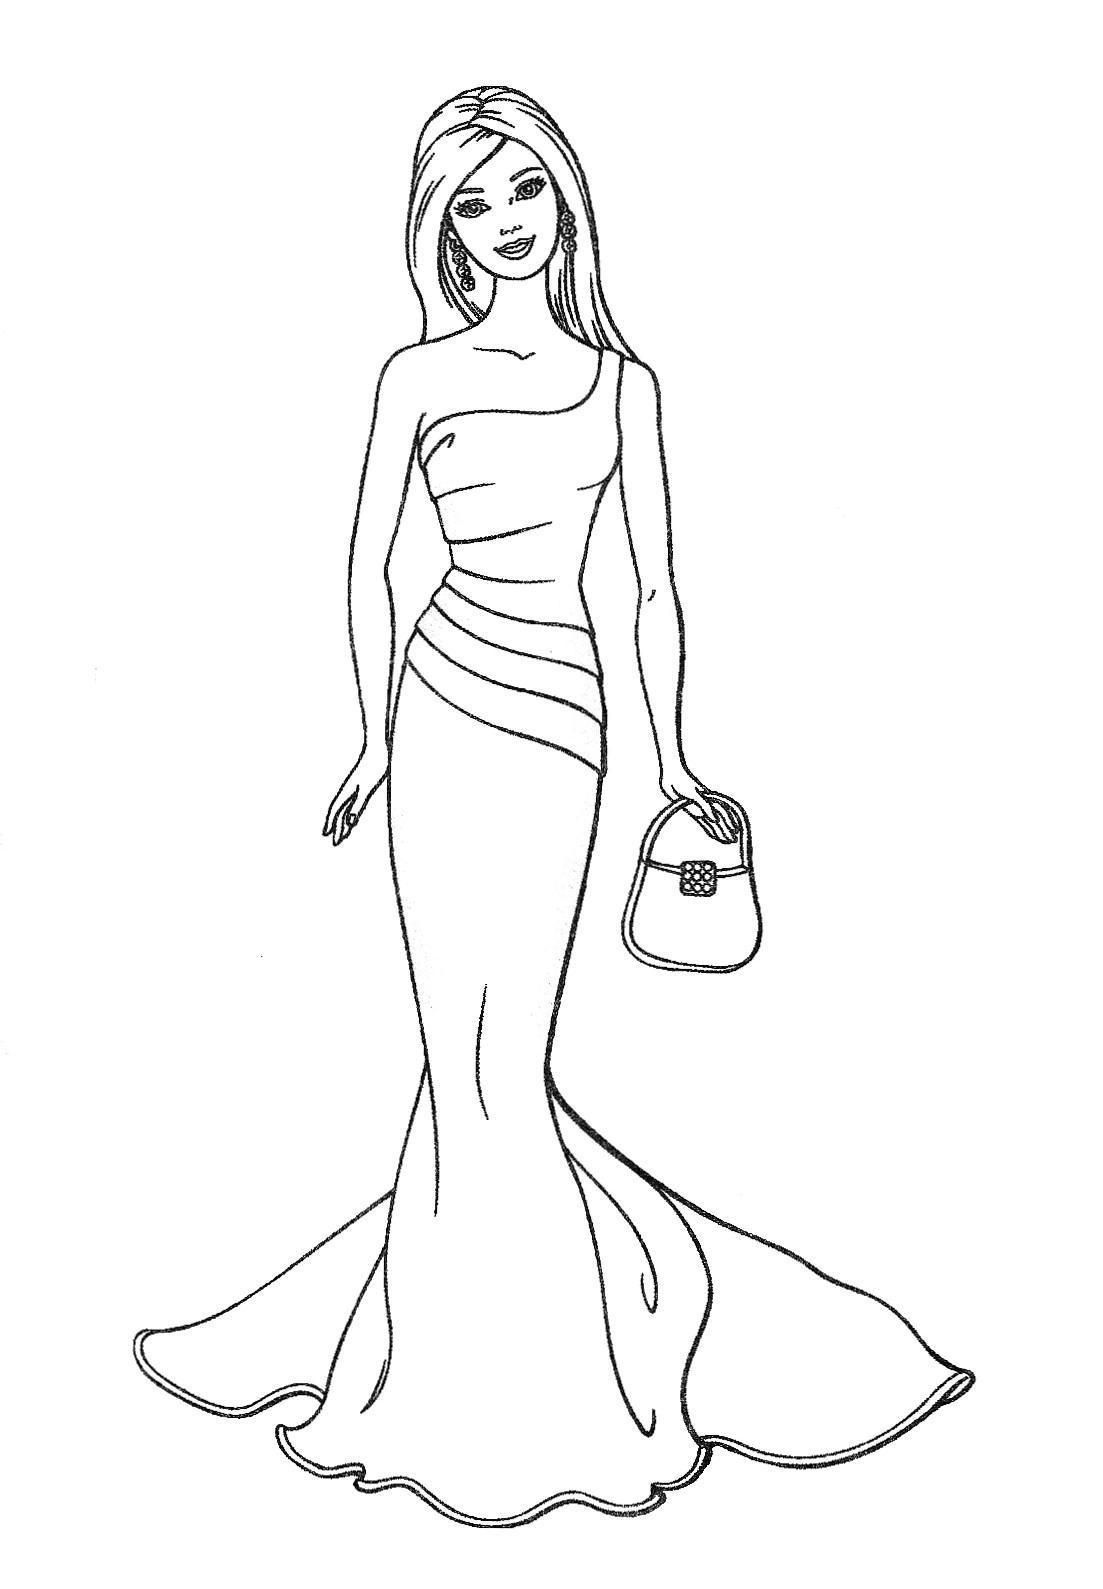 BARBIE COLORING PAGES: BARBIE COLORING PAGES | Barbie Badge | Pinterest